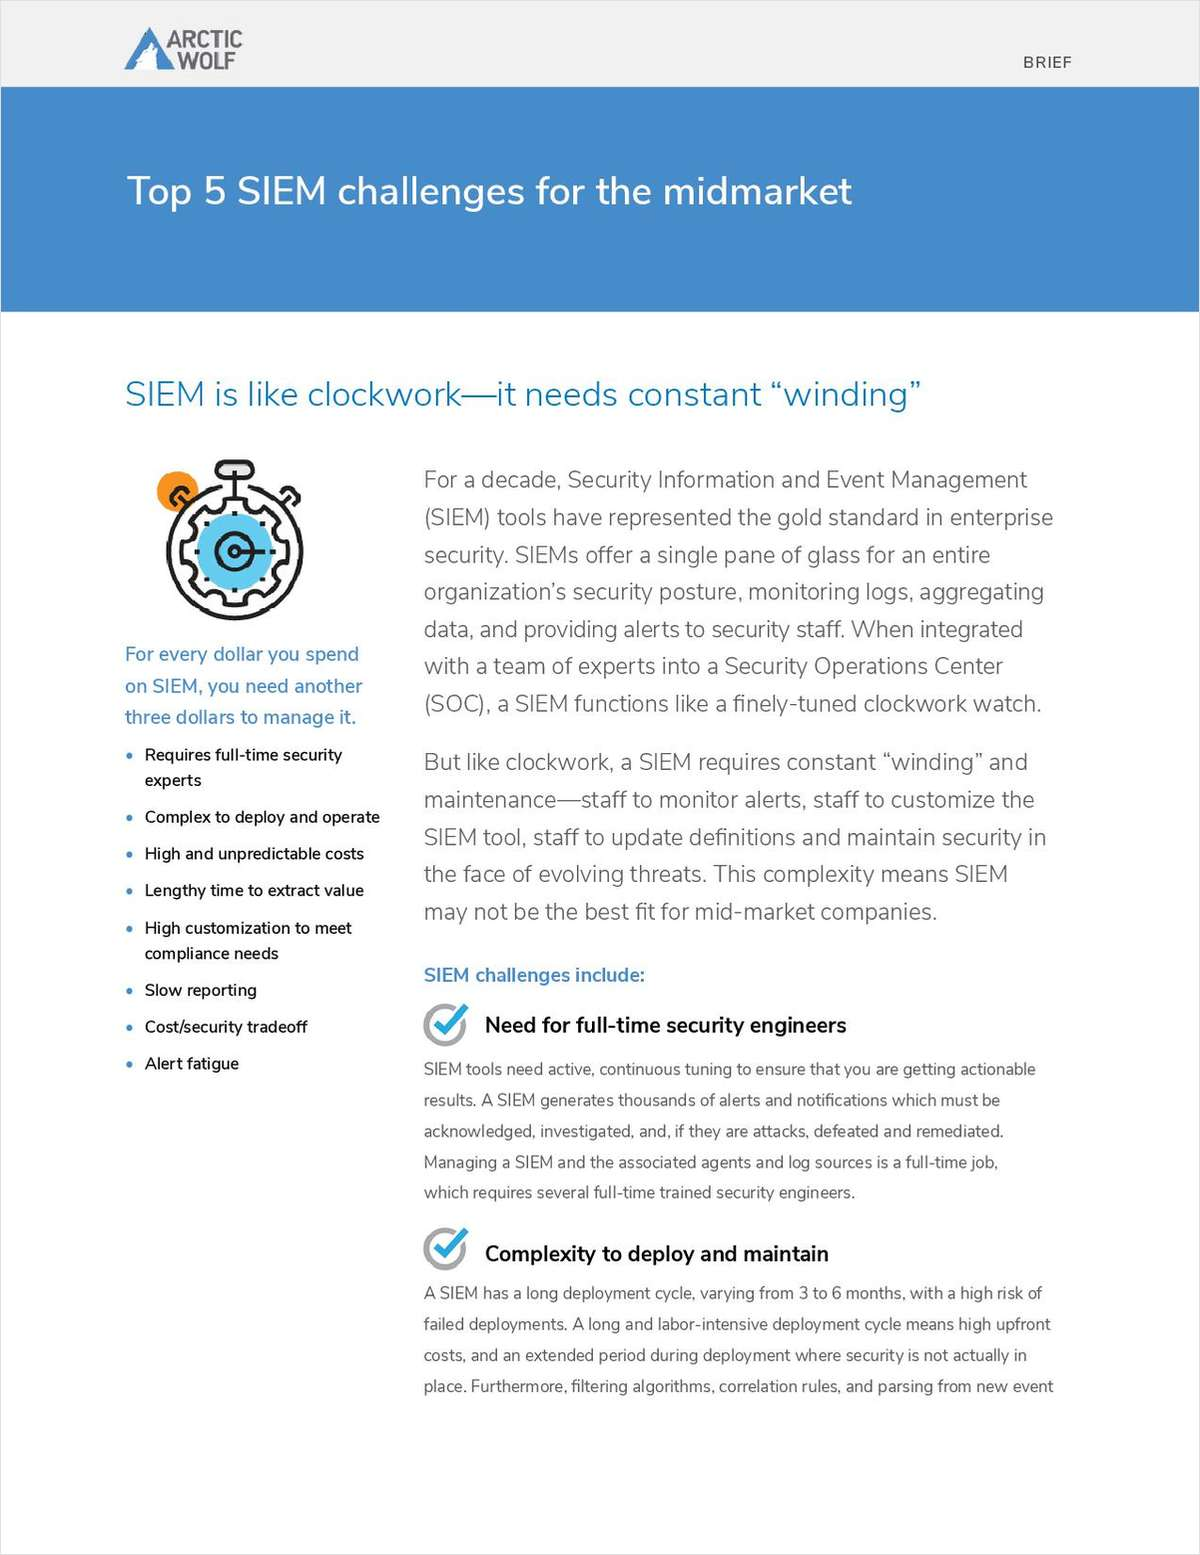 Top 5 SIEM Challenges for the Mid-Market